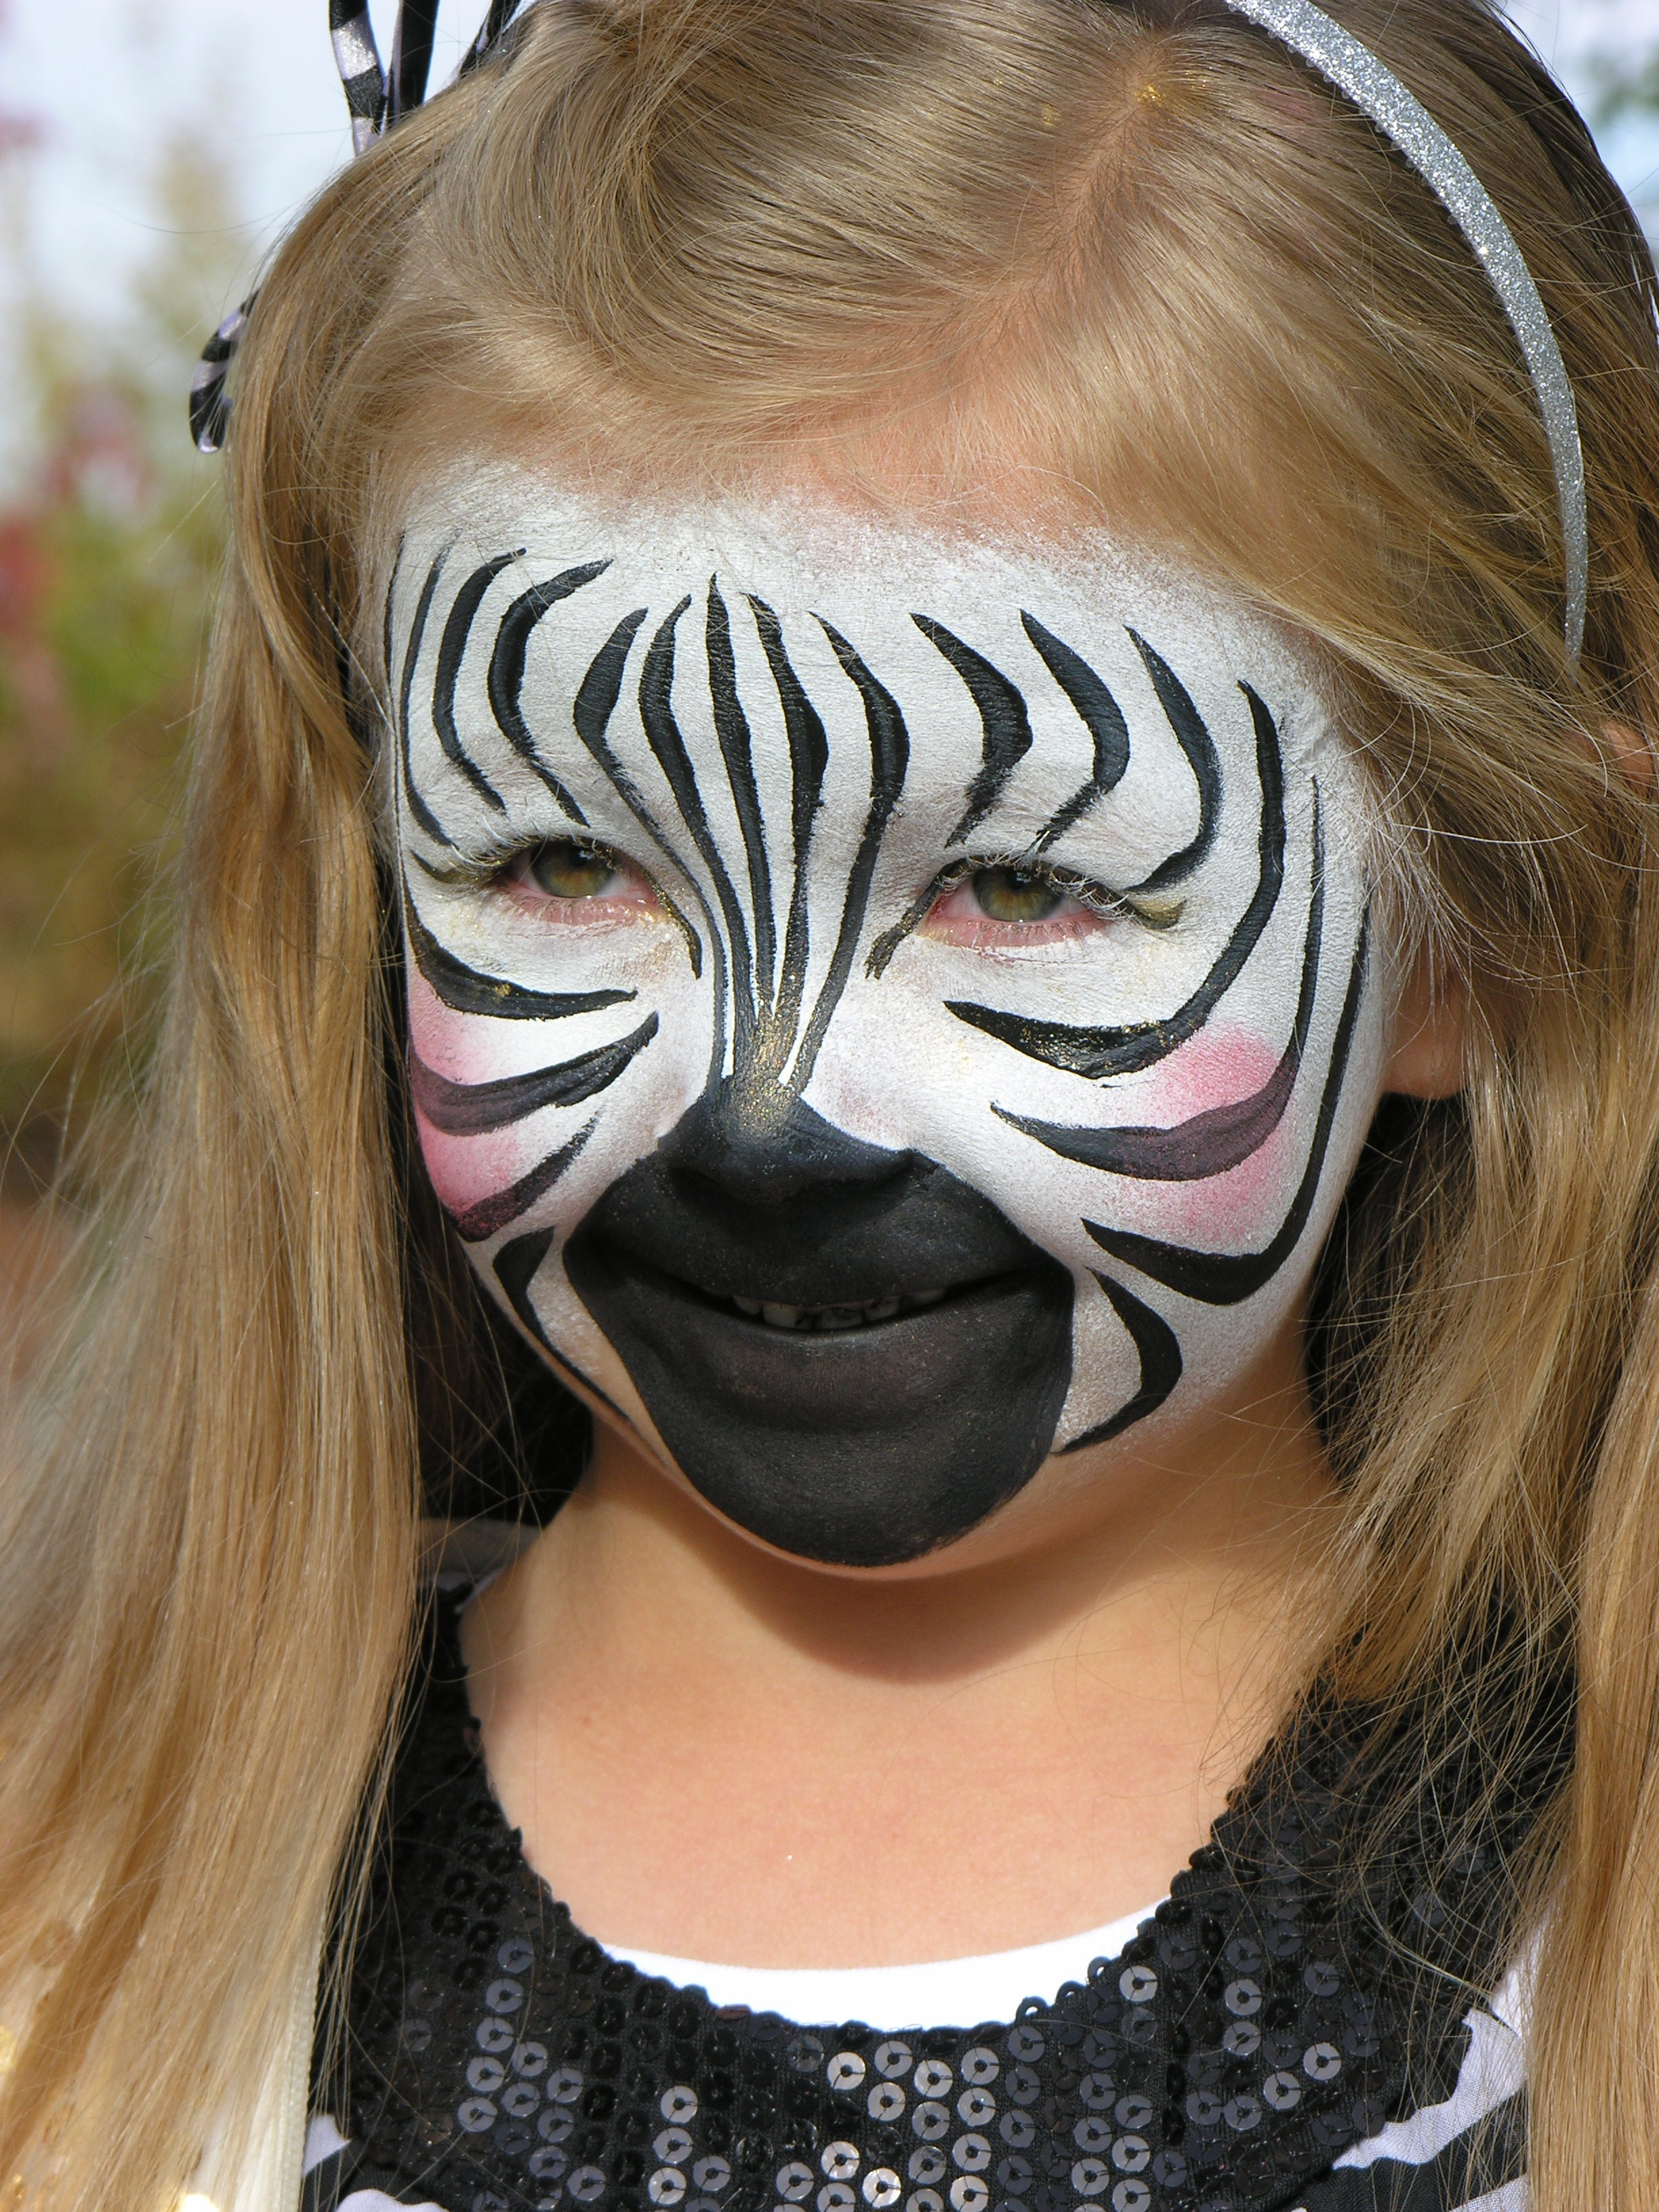 Face Paint The Story Of Makeup Amazon Co Uk Lisa: The Painted Otter